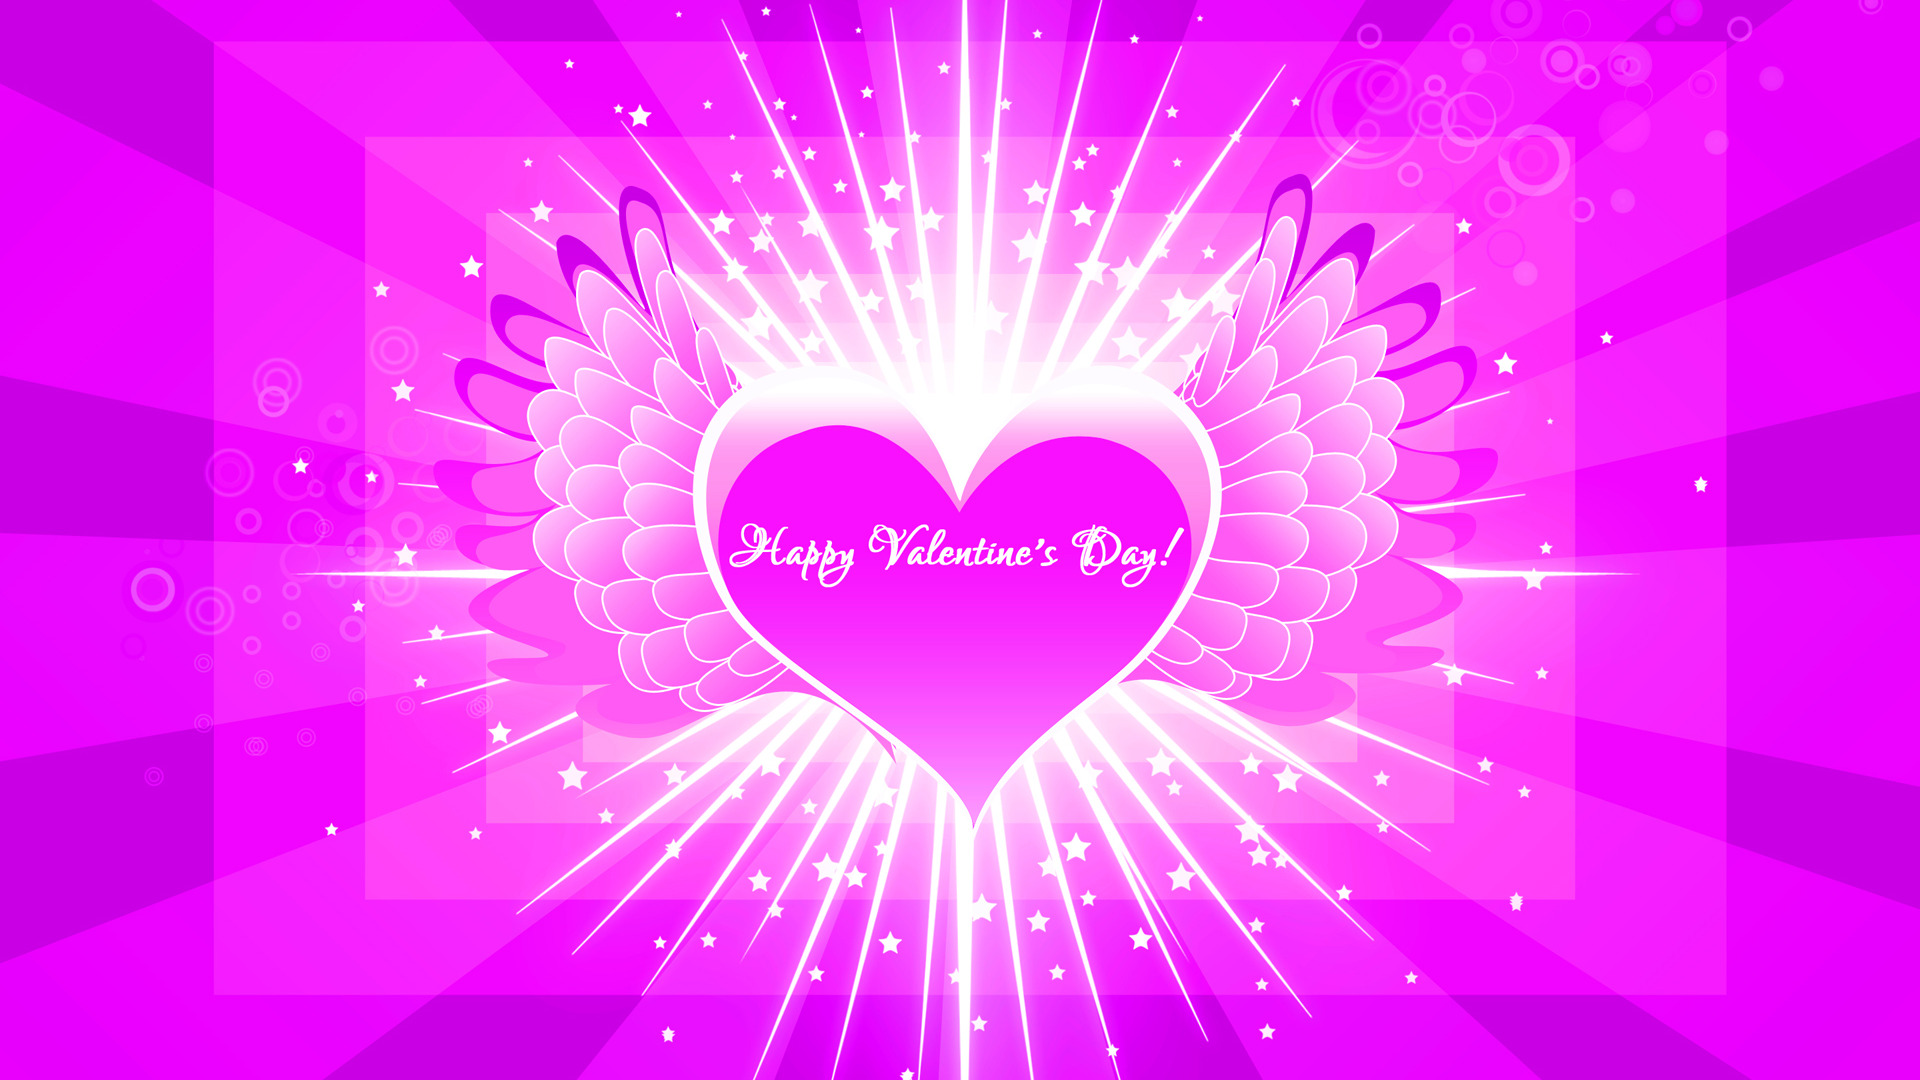 valentine wallpapers for mobile - photo #46